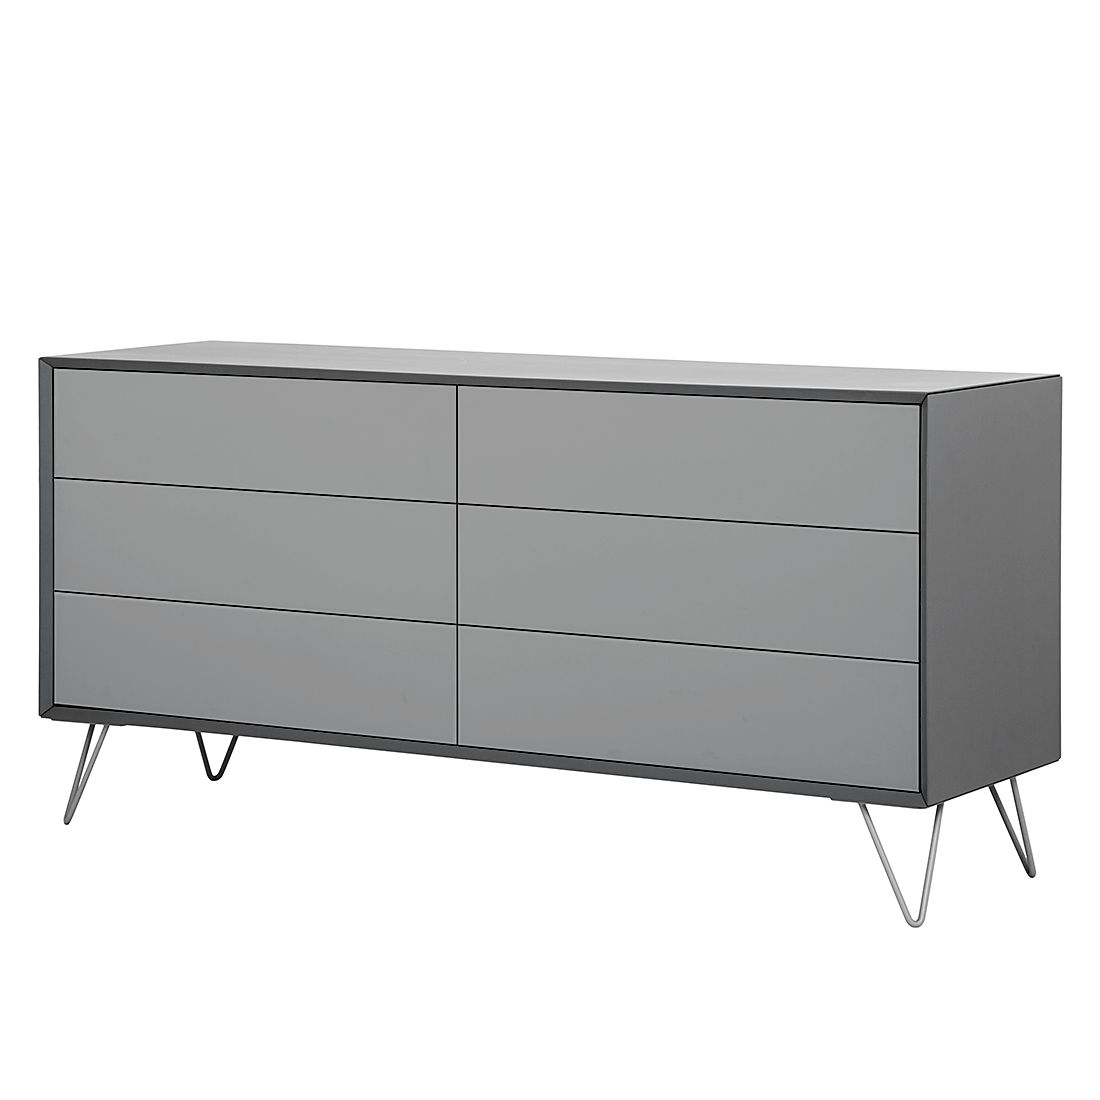 sideboard jerrell ii matt grau m rteens tipps vom. Black Bedroom Furniture Sets. Home Design Ideas